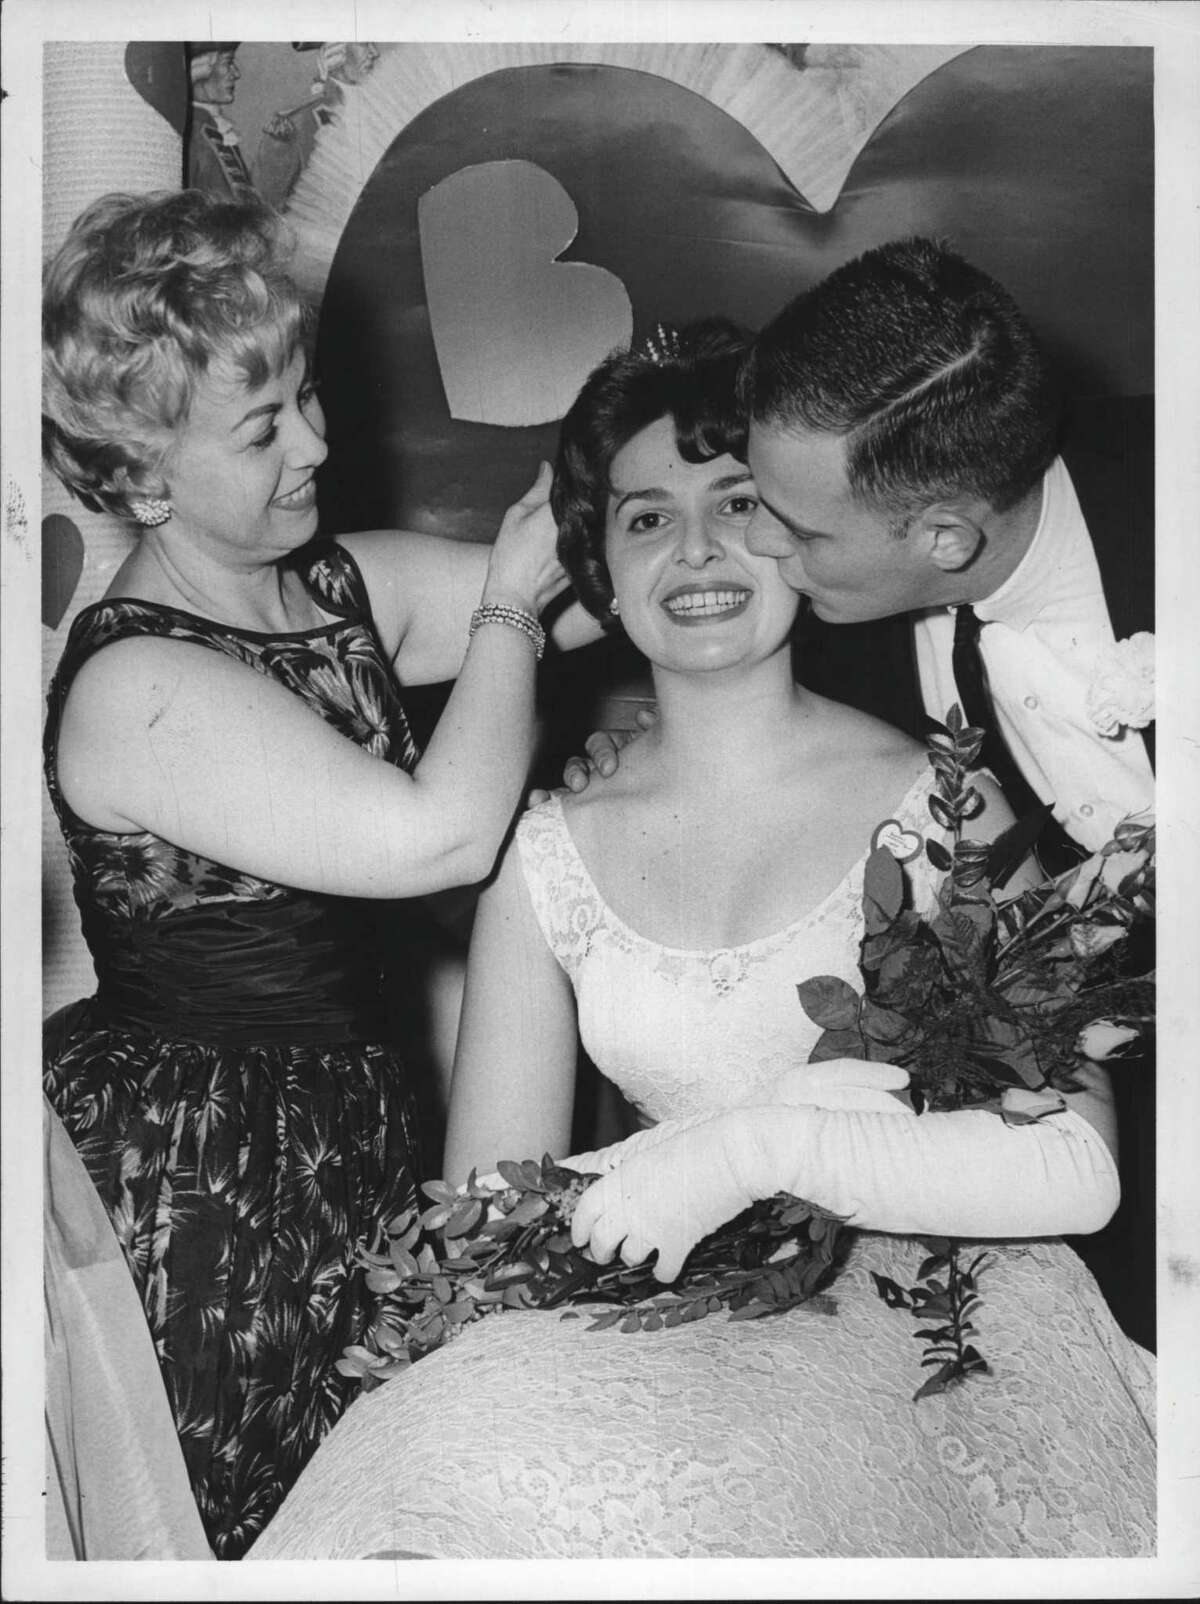 Crossroads Restaurant, Latham, New York - Valentine Queen, Beta Sigma Phi - Miss Carol Bratton, Chairman of Affair, Mrs. Jan Holick, Queen, Jan Holick Undated (husband). February 21, 1962 (Thomas Sheehan/Times Union Archive)